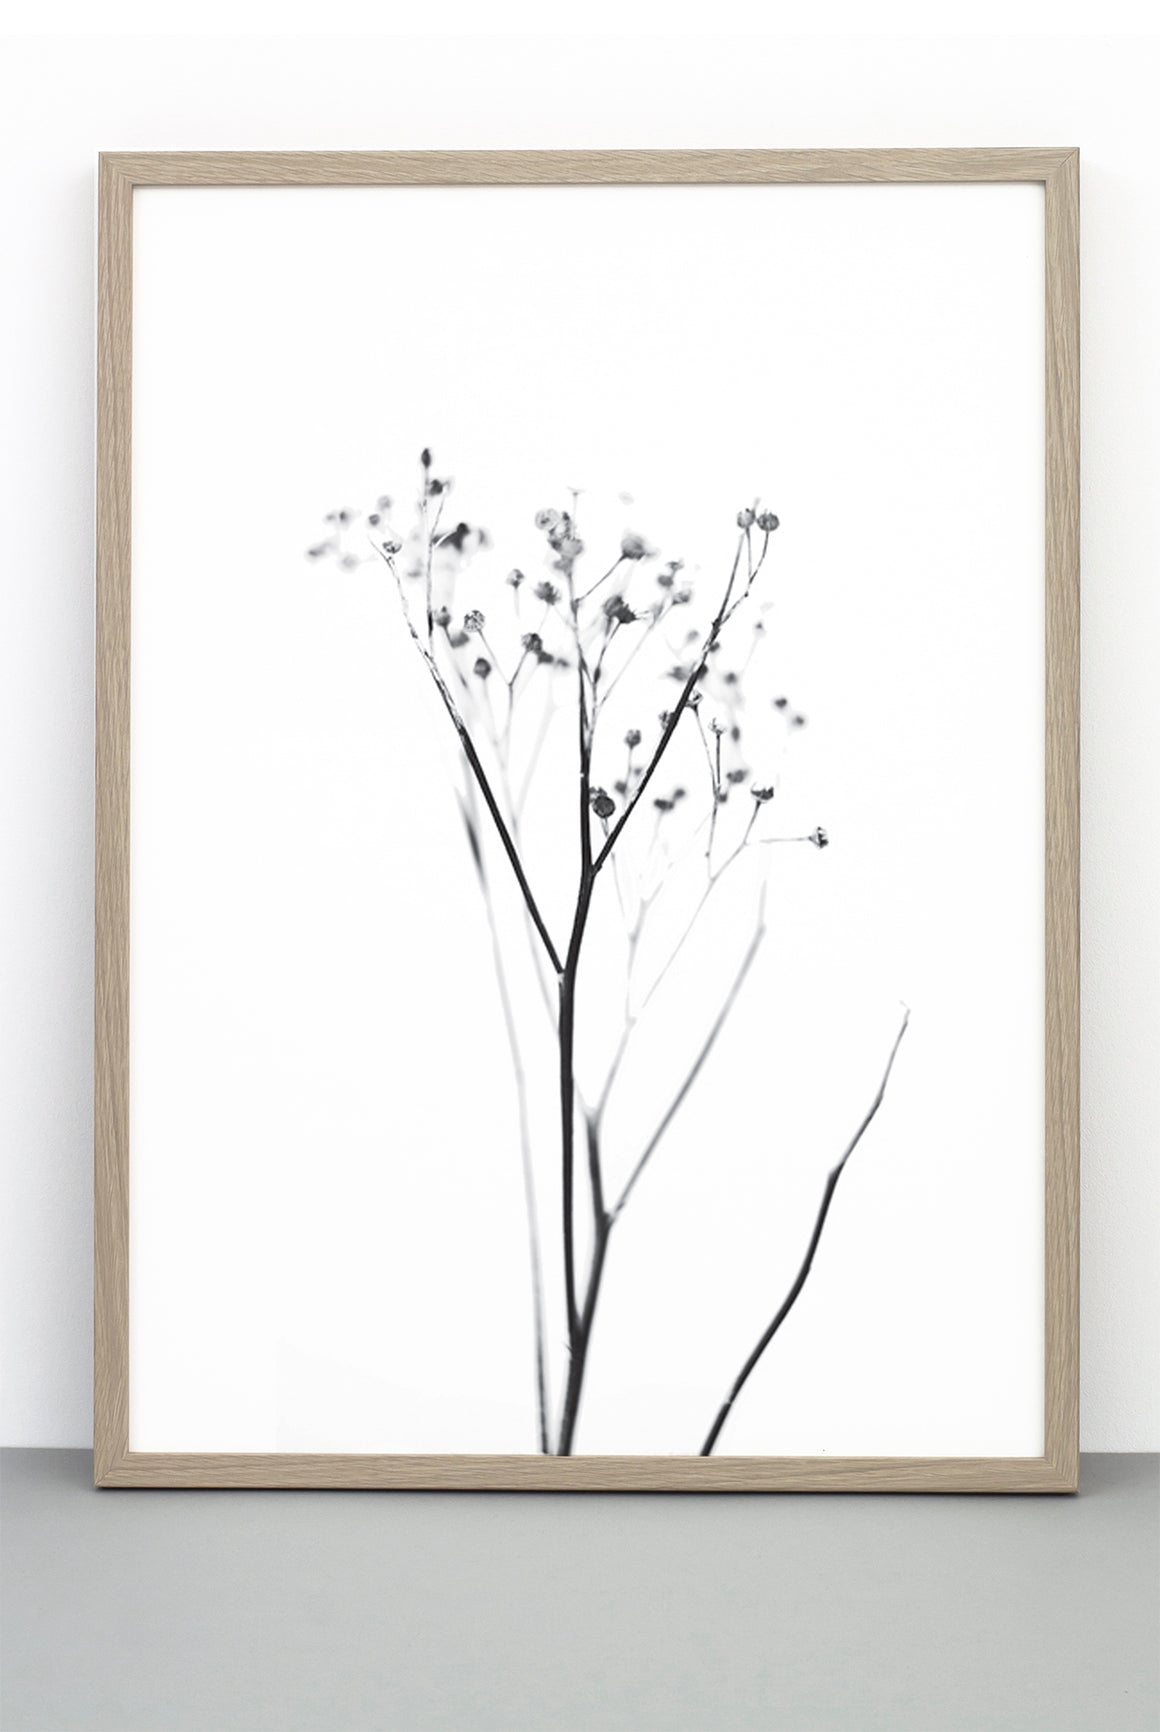 WHOLESALE YARROW PRINT,  A BOTANICAL PHOTOGRAPHIC BLACK AND WHITE POSTER